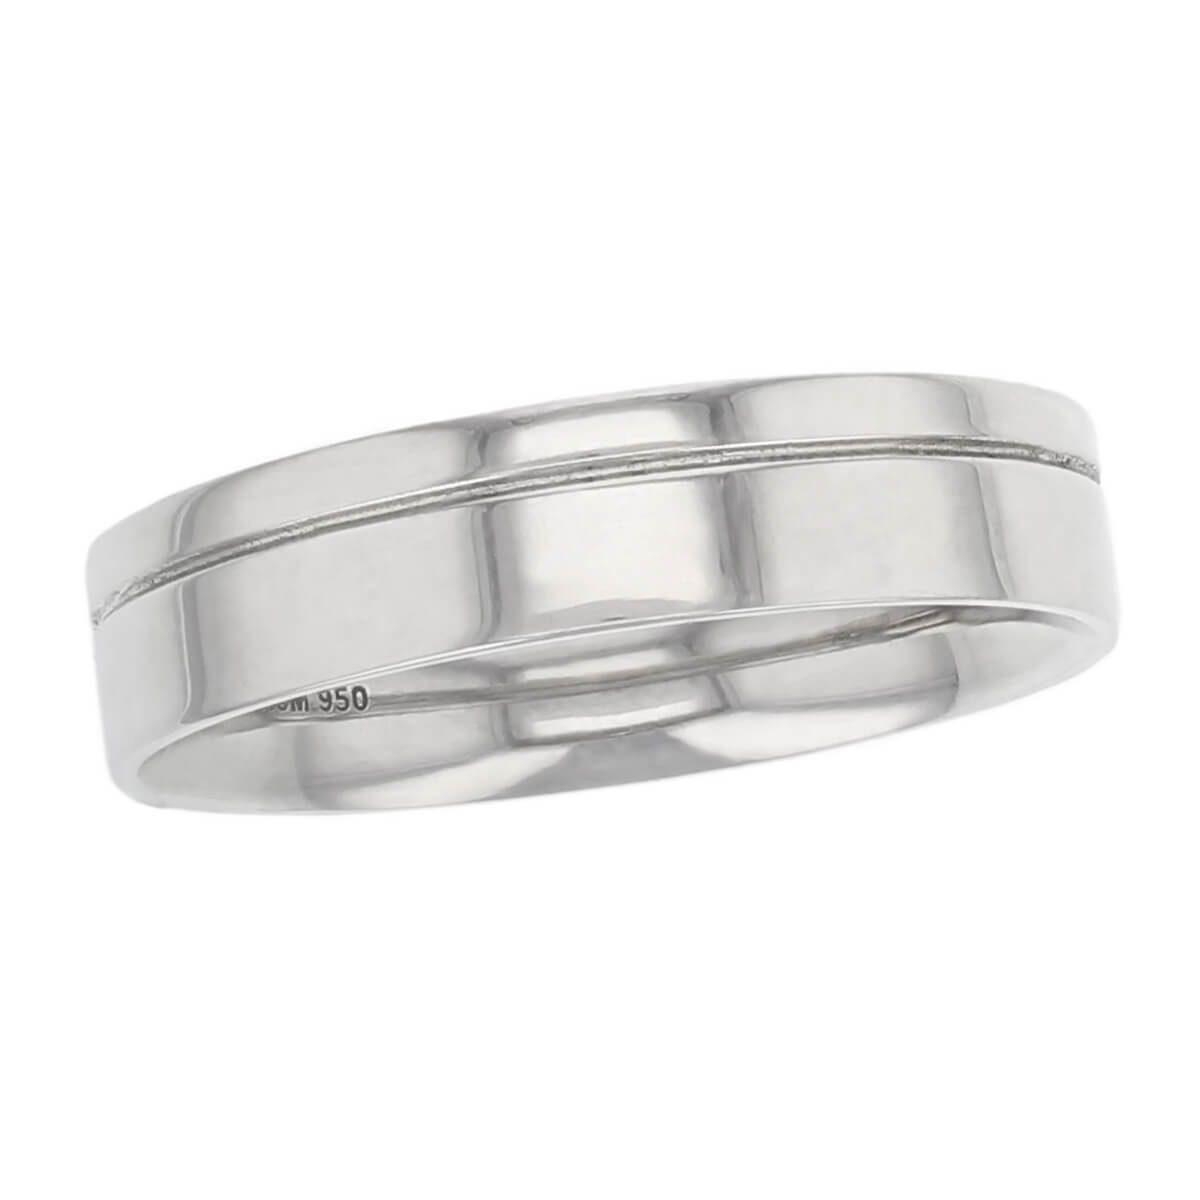 off centre groove polished wedding ring pattern, men's, gents